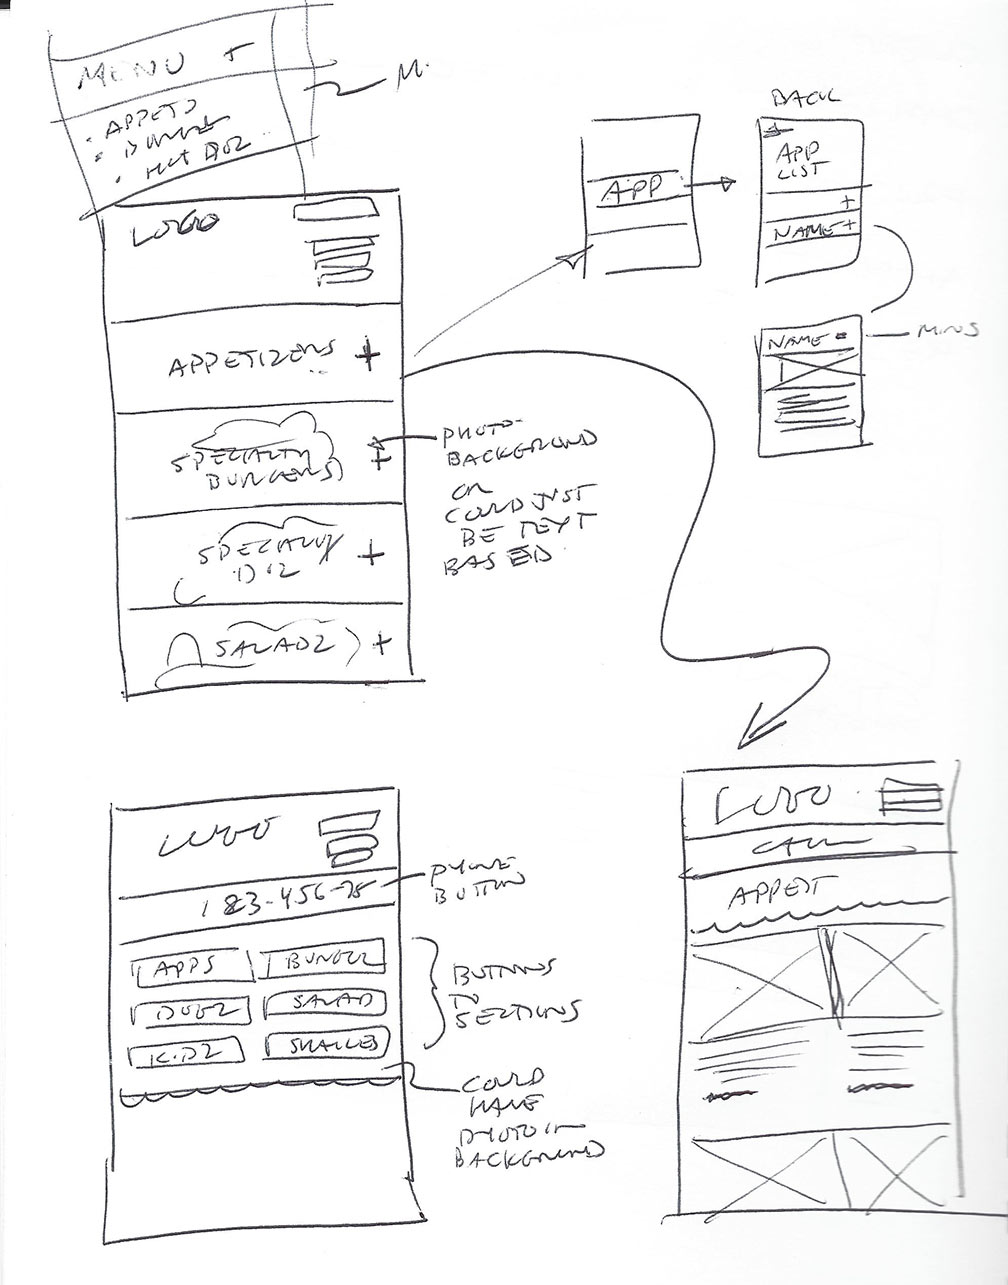 BnDz Mobile Navigation Sketch